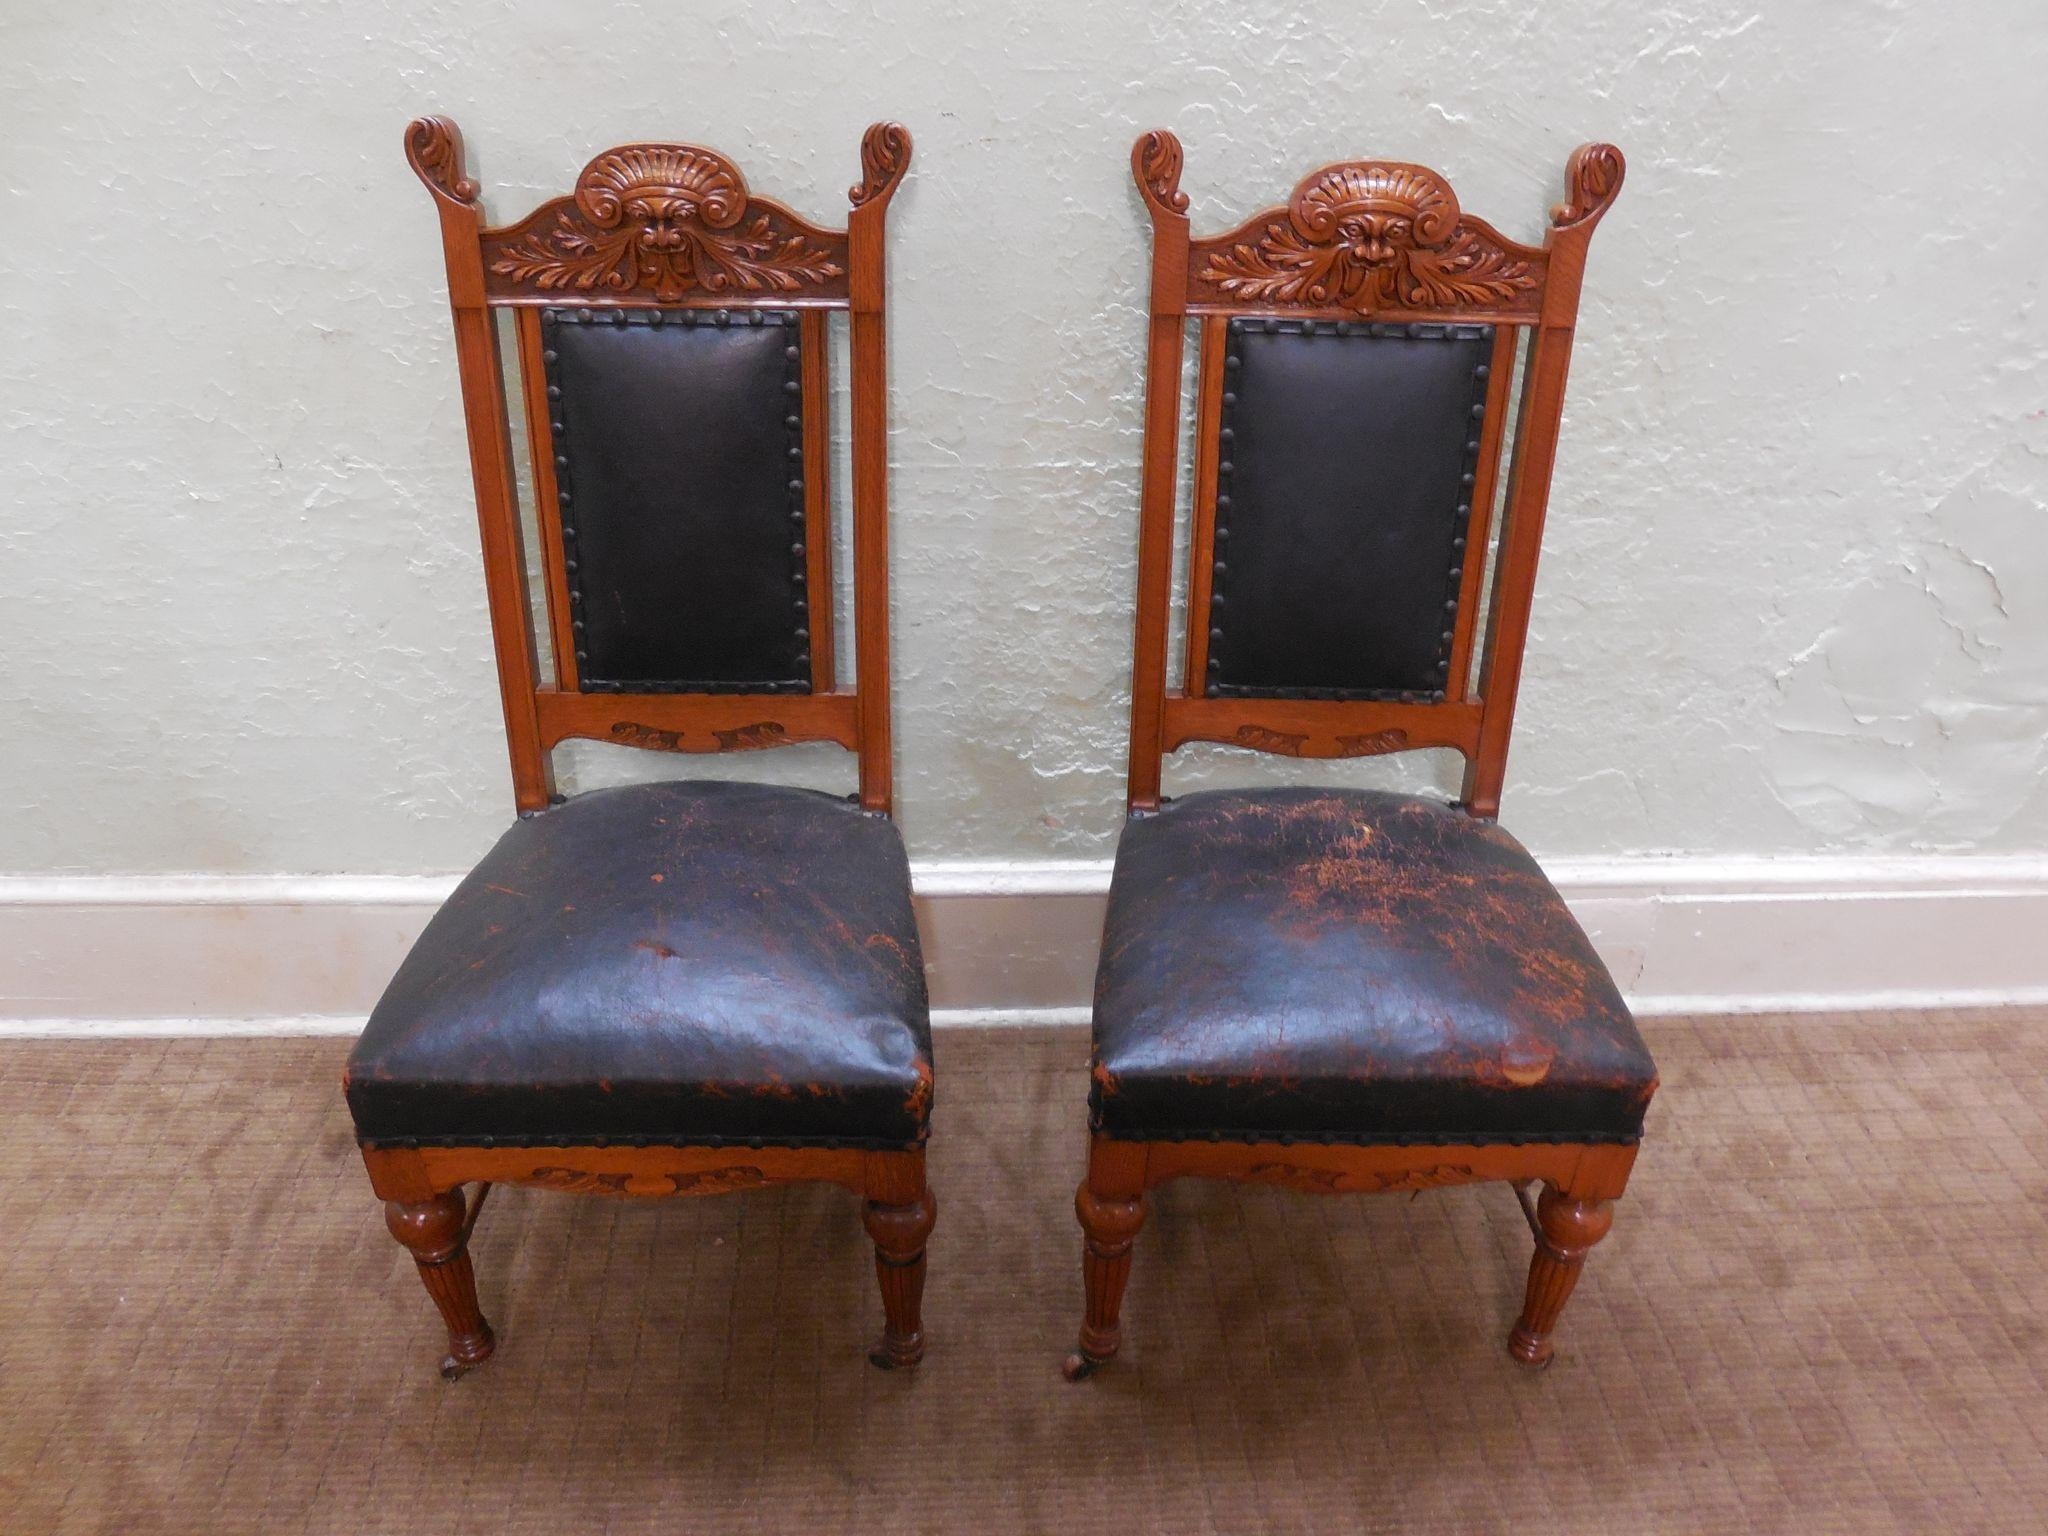 Antique victorian dining chairs - Good Hastings Antique Set Of Honey Oak Northwind Carved Victorian With Victorian Dining Chairs